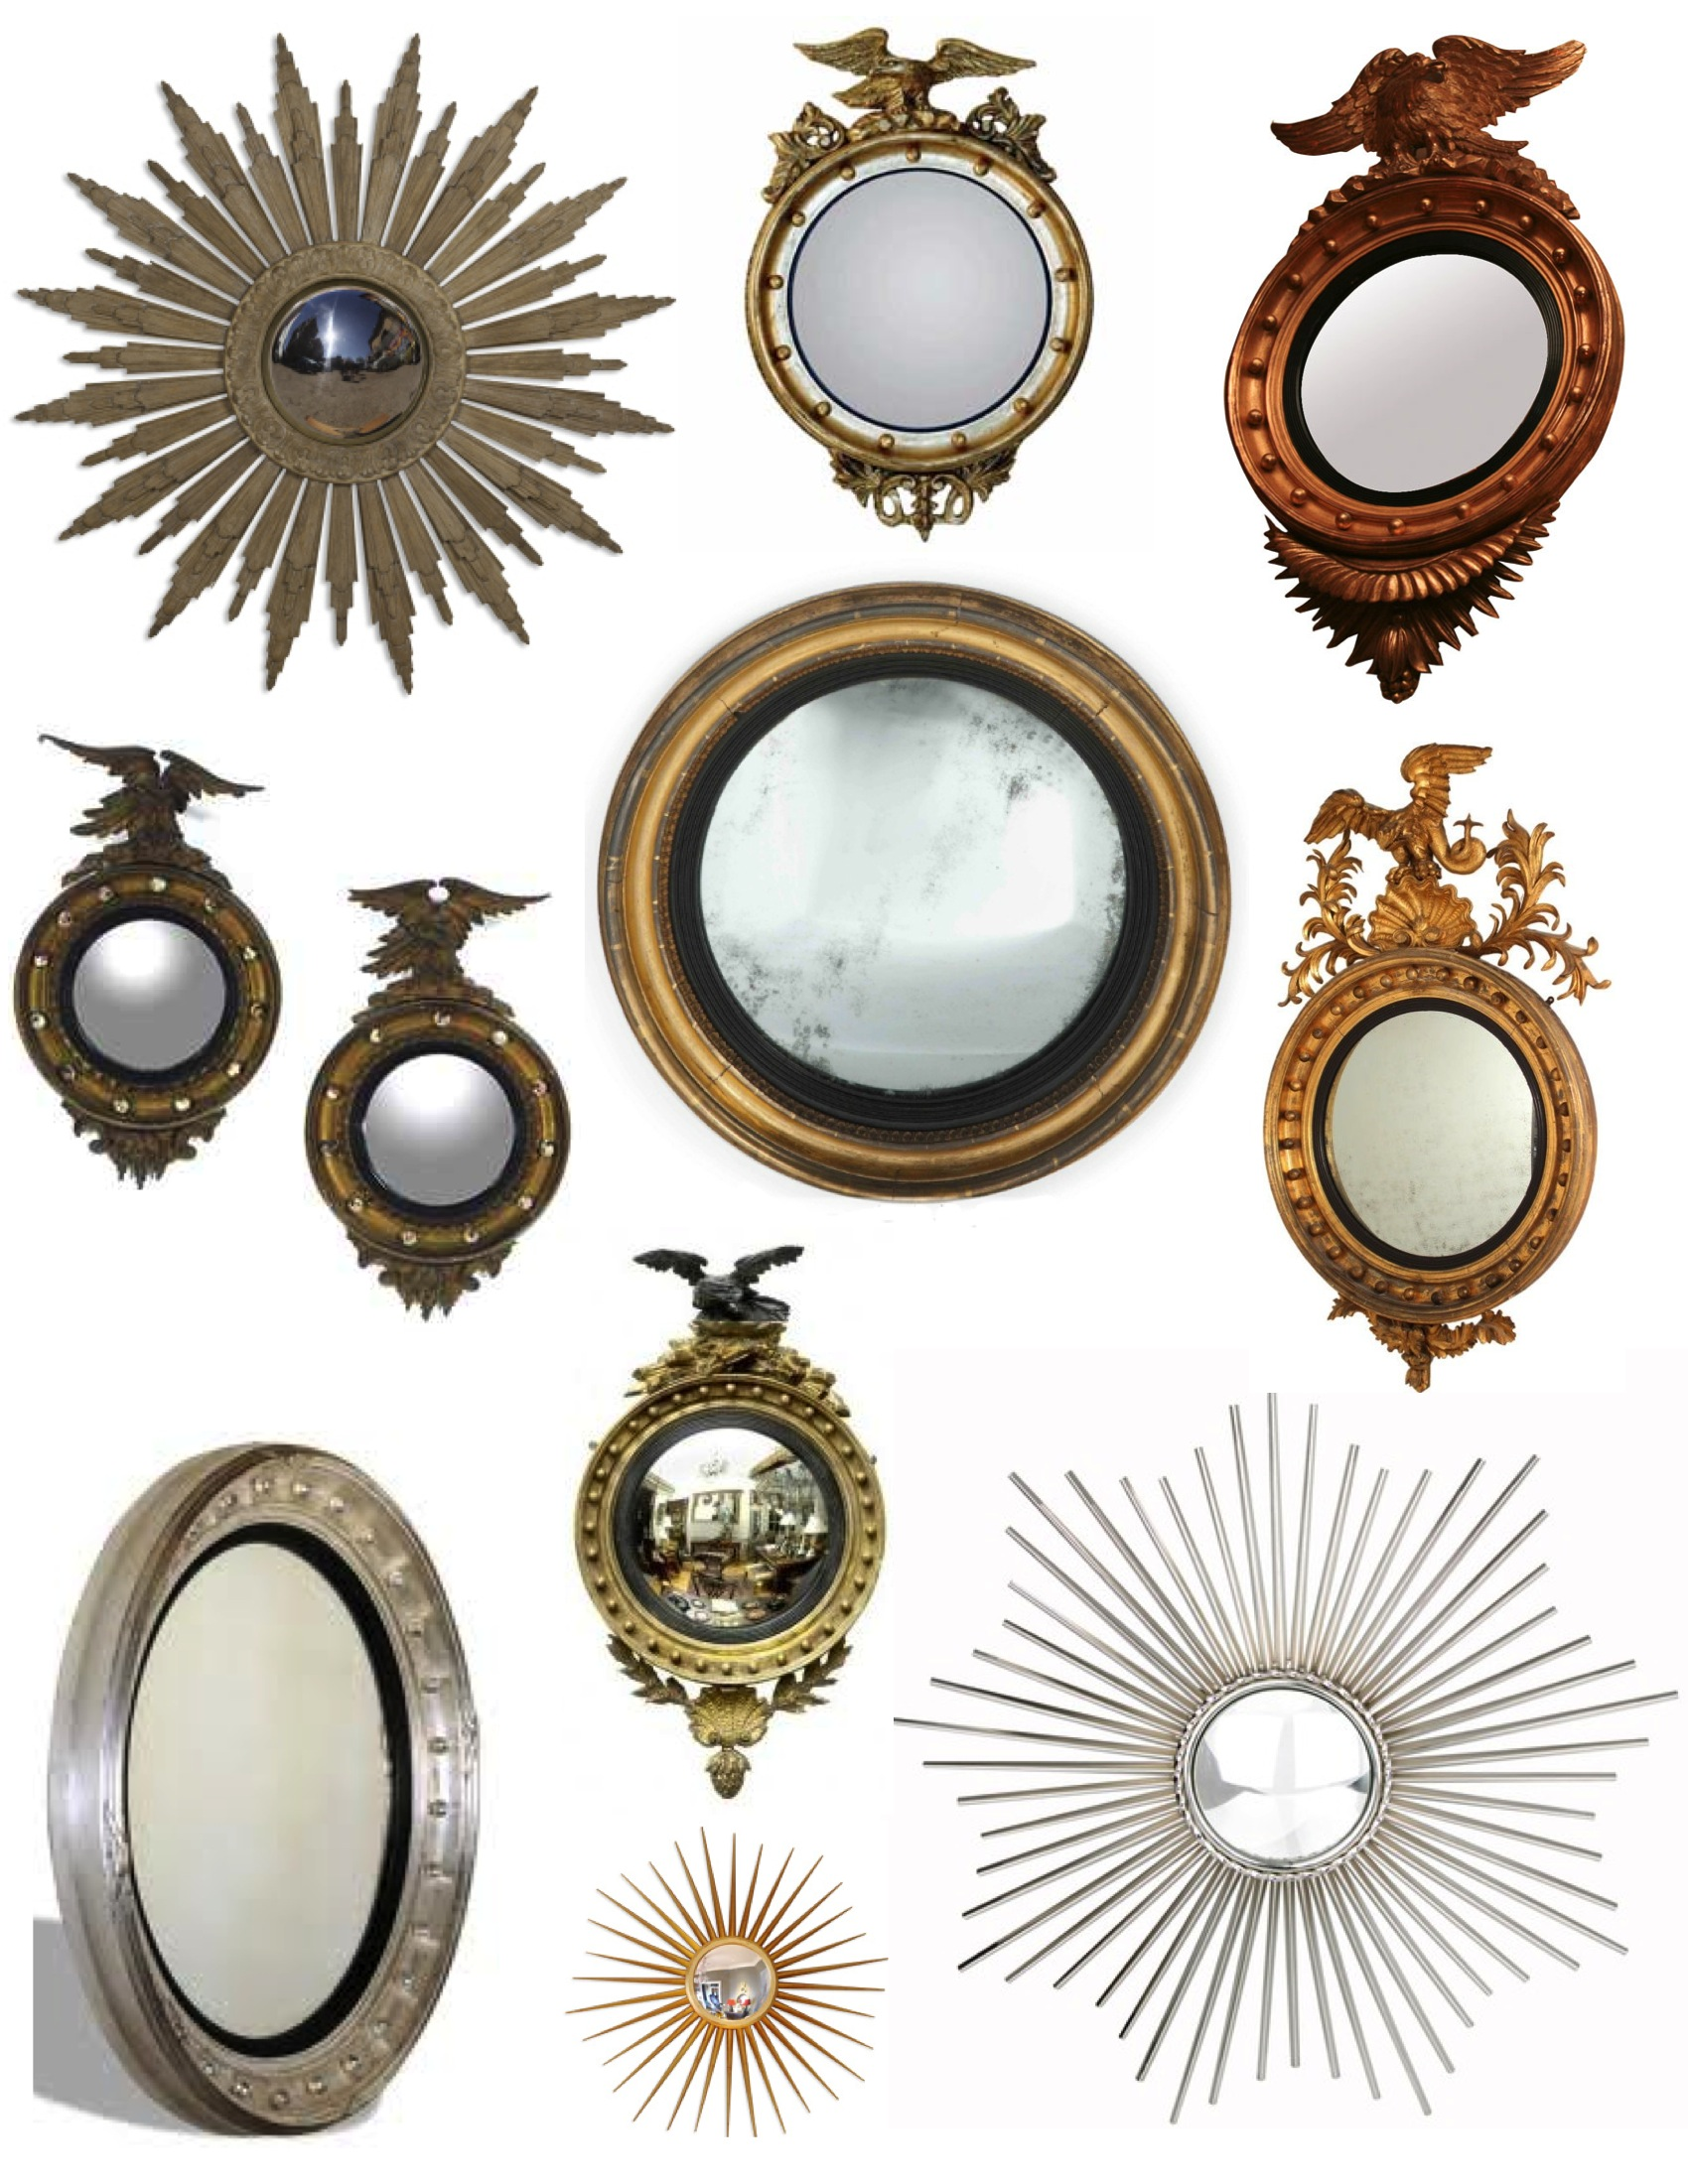 The Timeless Convex Mirror